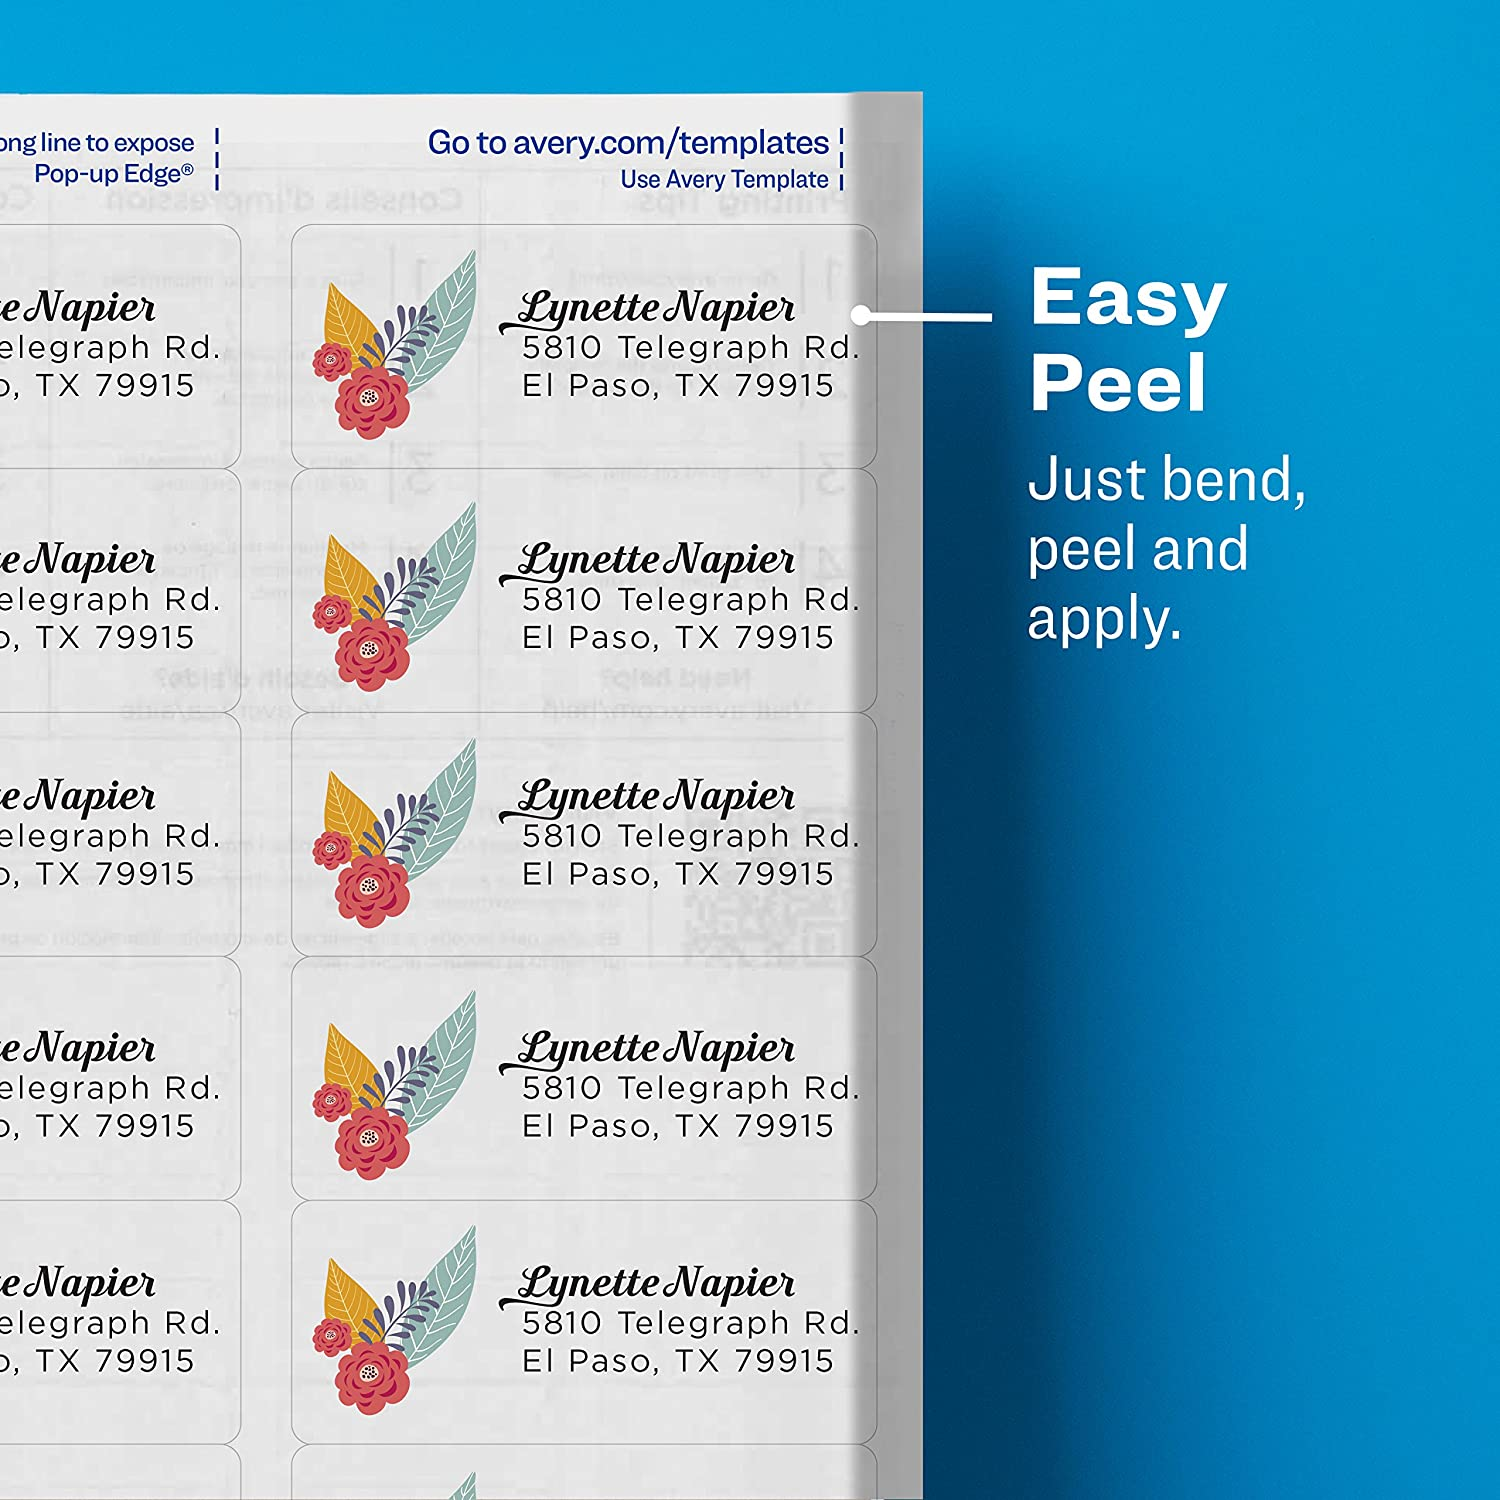 Avery 5662 Easy Peel 1 13 Inch X 4 Inch Clear Address Labels 700